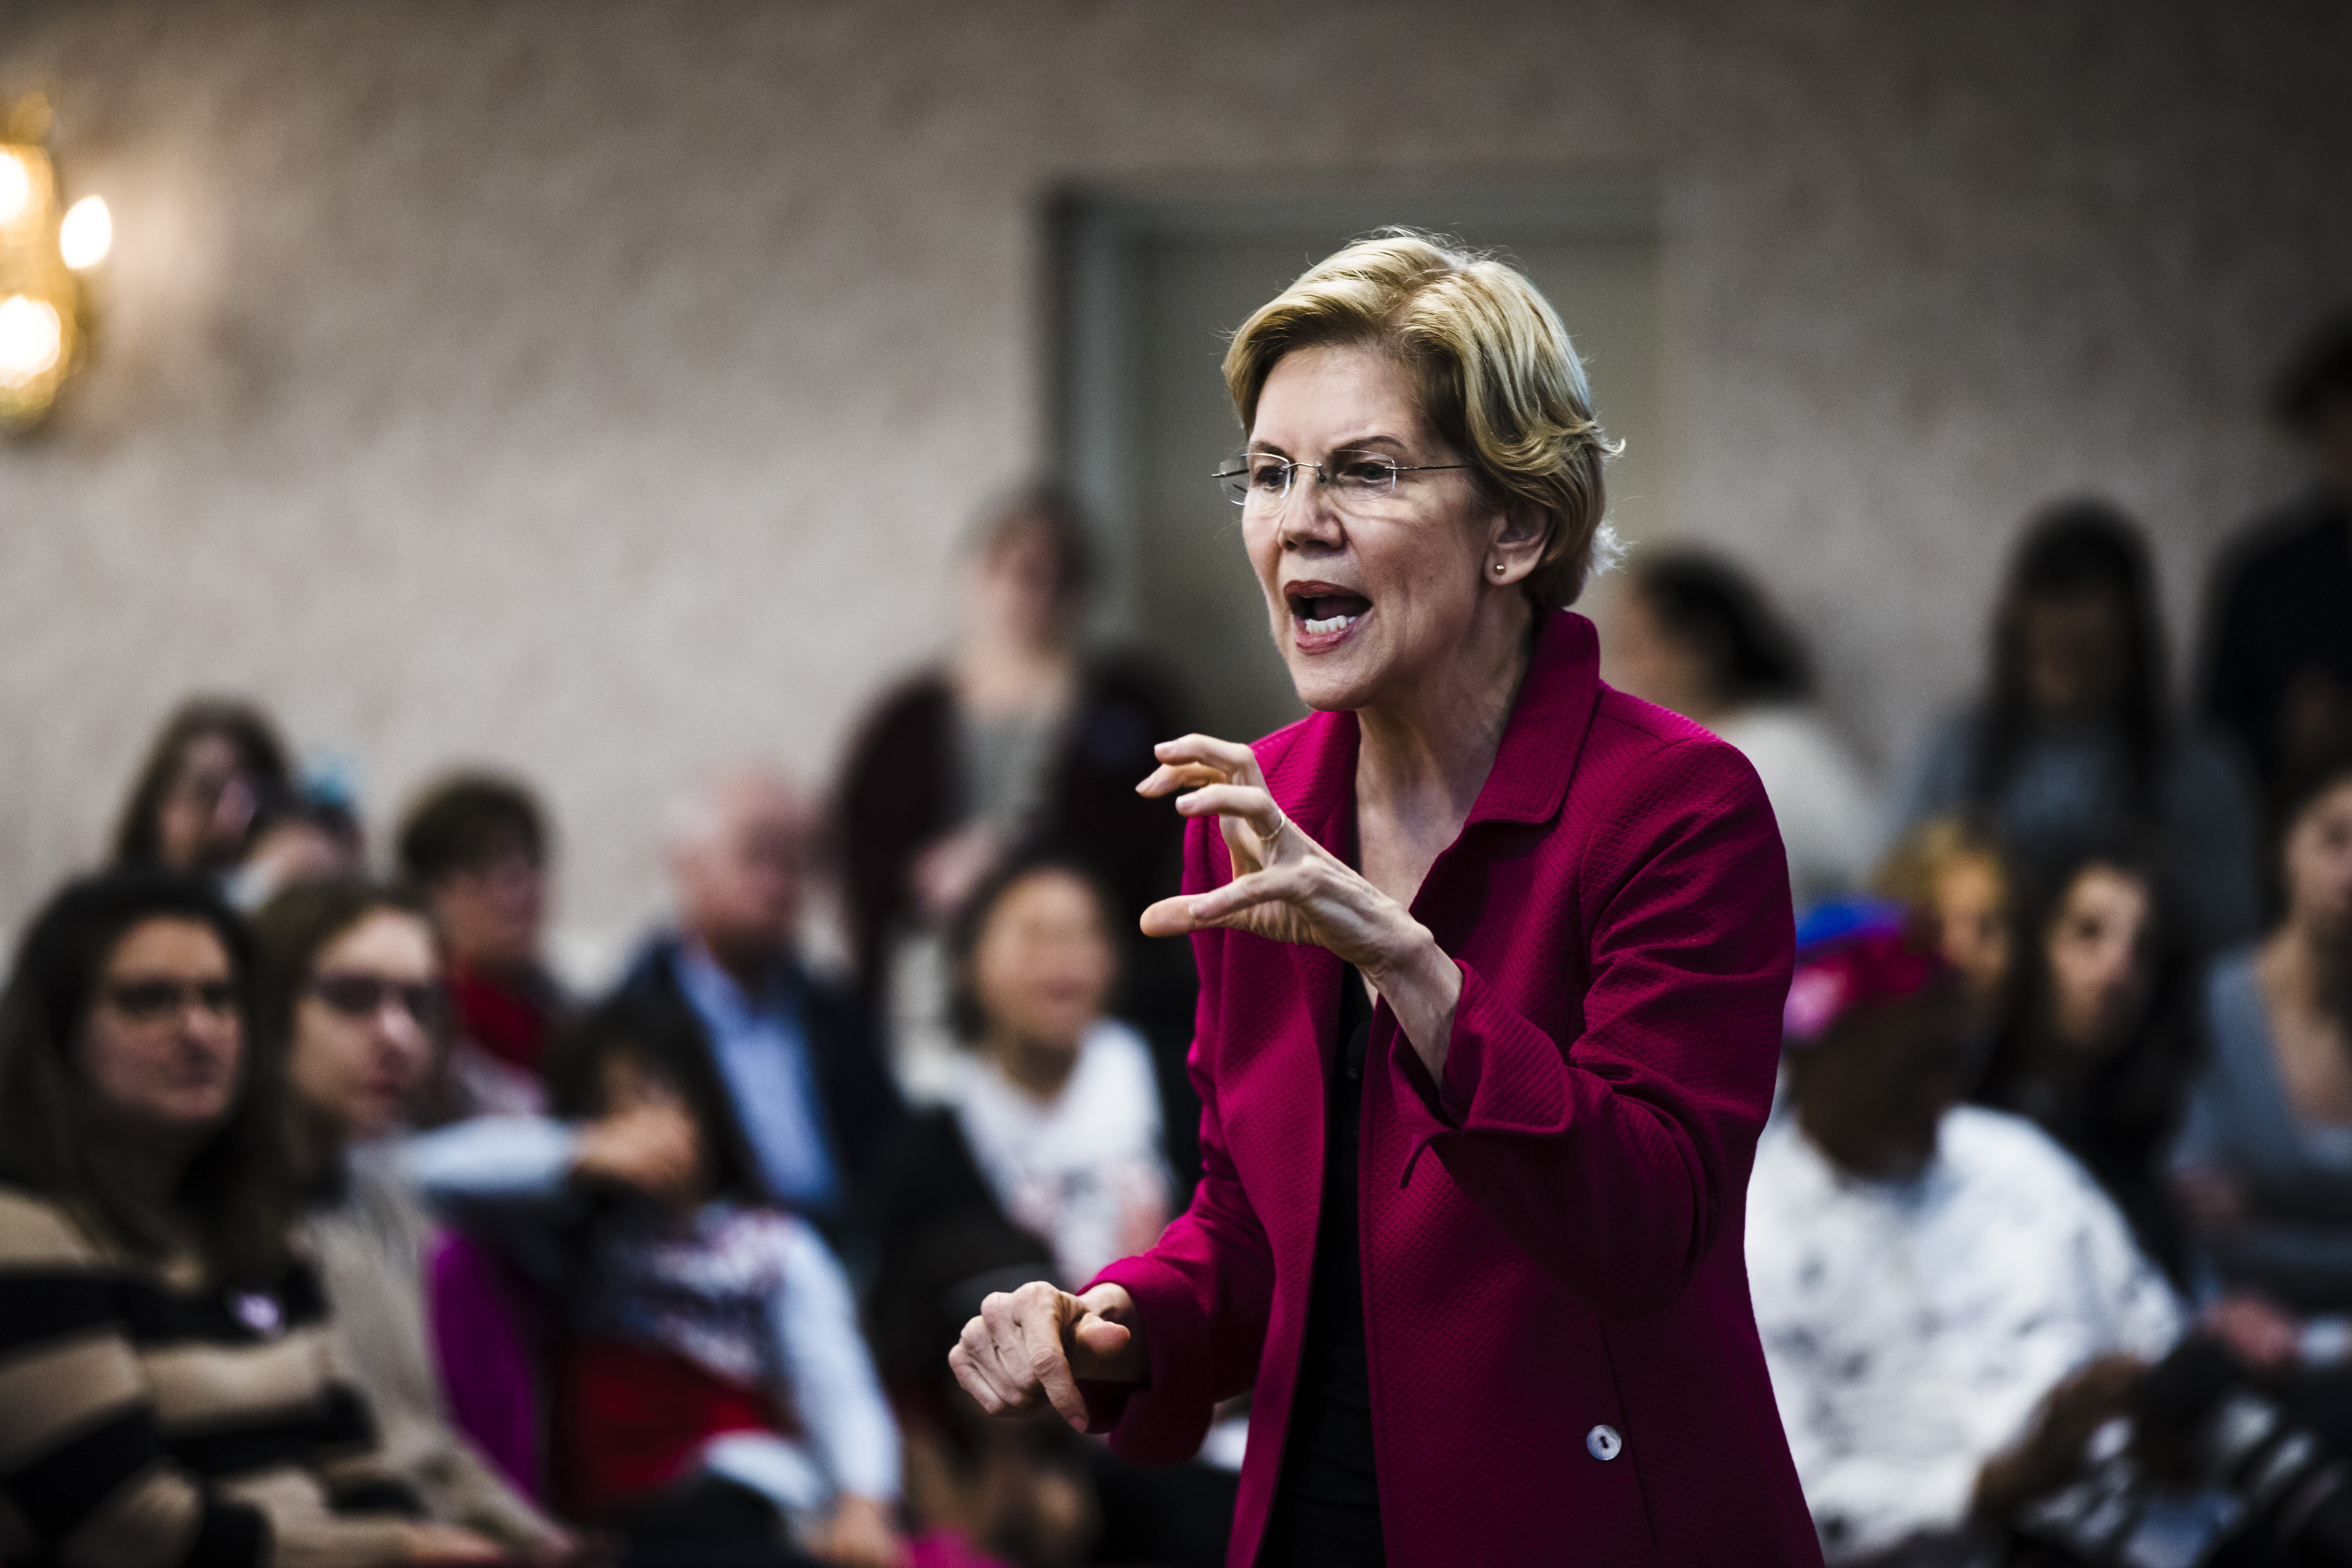 Democratic presidential candidate Sen. Elizabeth Warren during an American Federation of Teachers town hall event, at the Plumbers Local 690 Union Hall in Philadelphia on Monday, May 13, 2019. Warren is saying no to a televised town hall on Fox News, slamming the network as  a hate-for-profit racket.